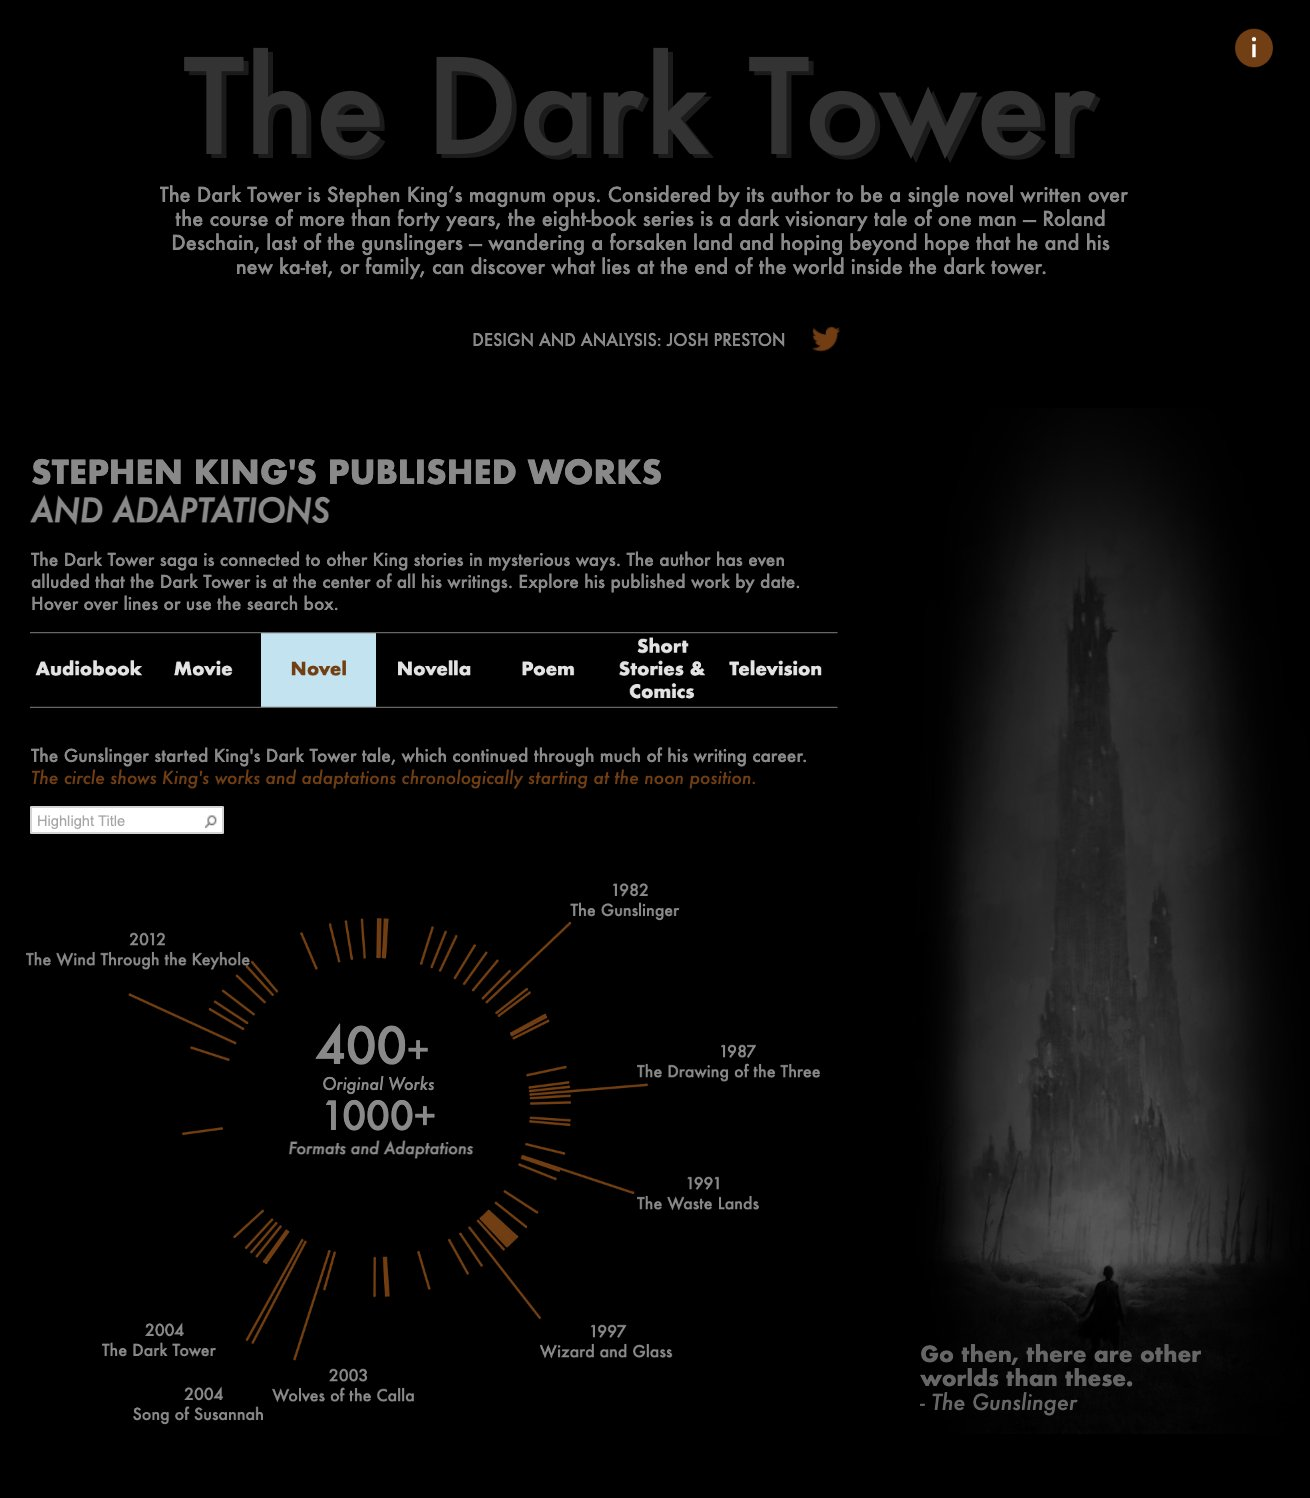 The Dark Tower book series